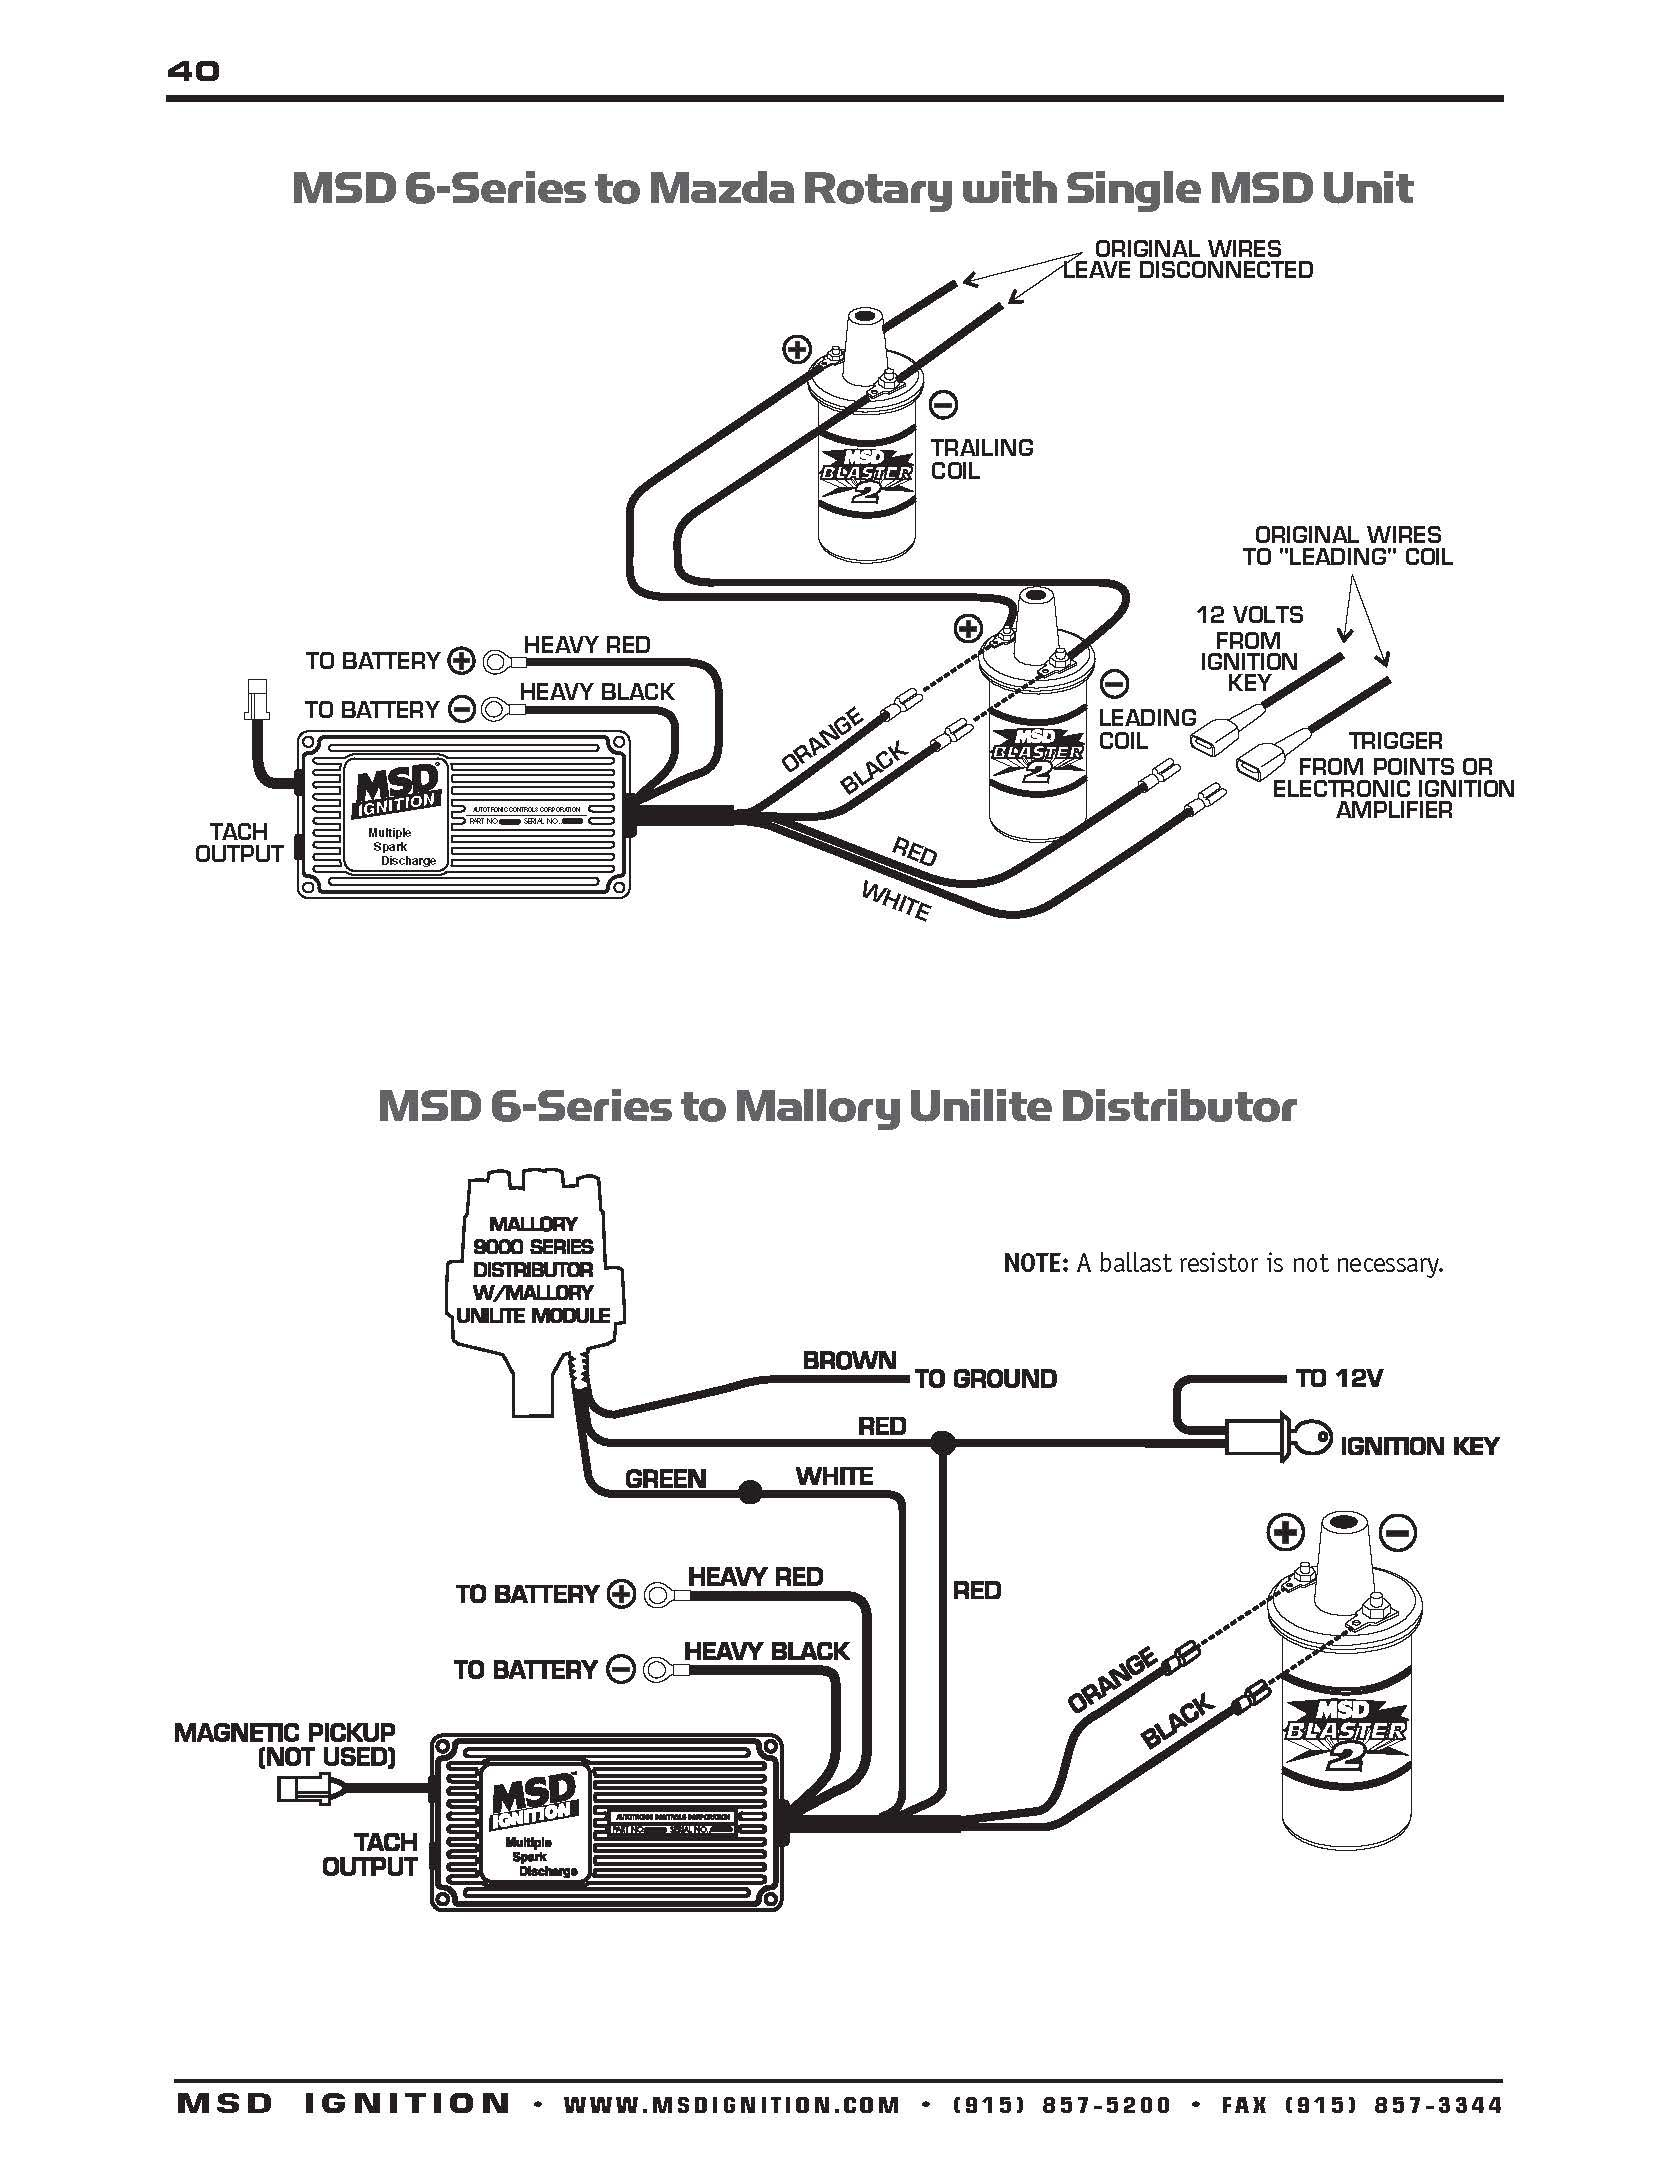 Mallory Unilite Wiring Diagram Sbc Diagrams Schematics Inside ... on